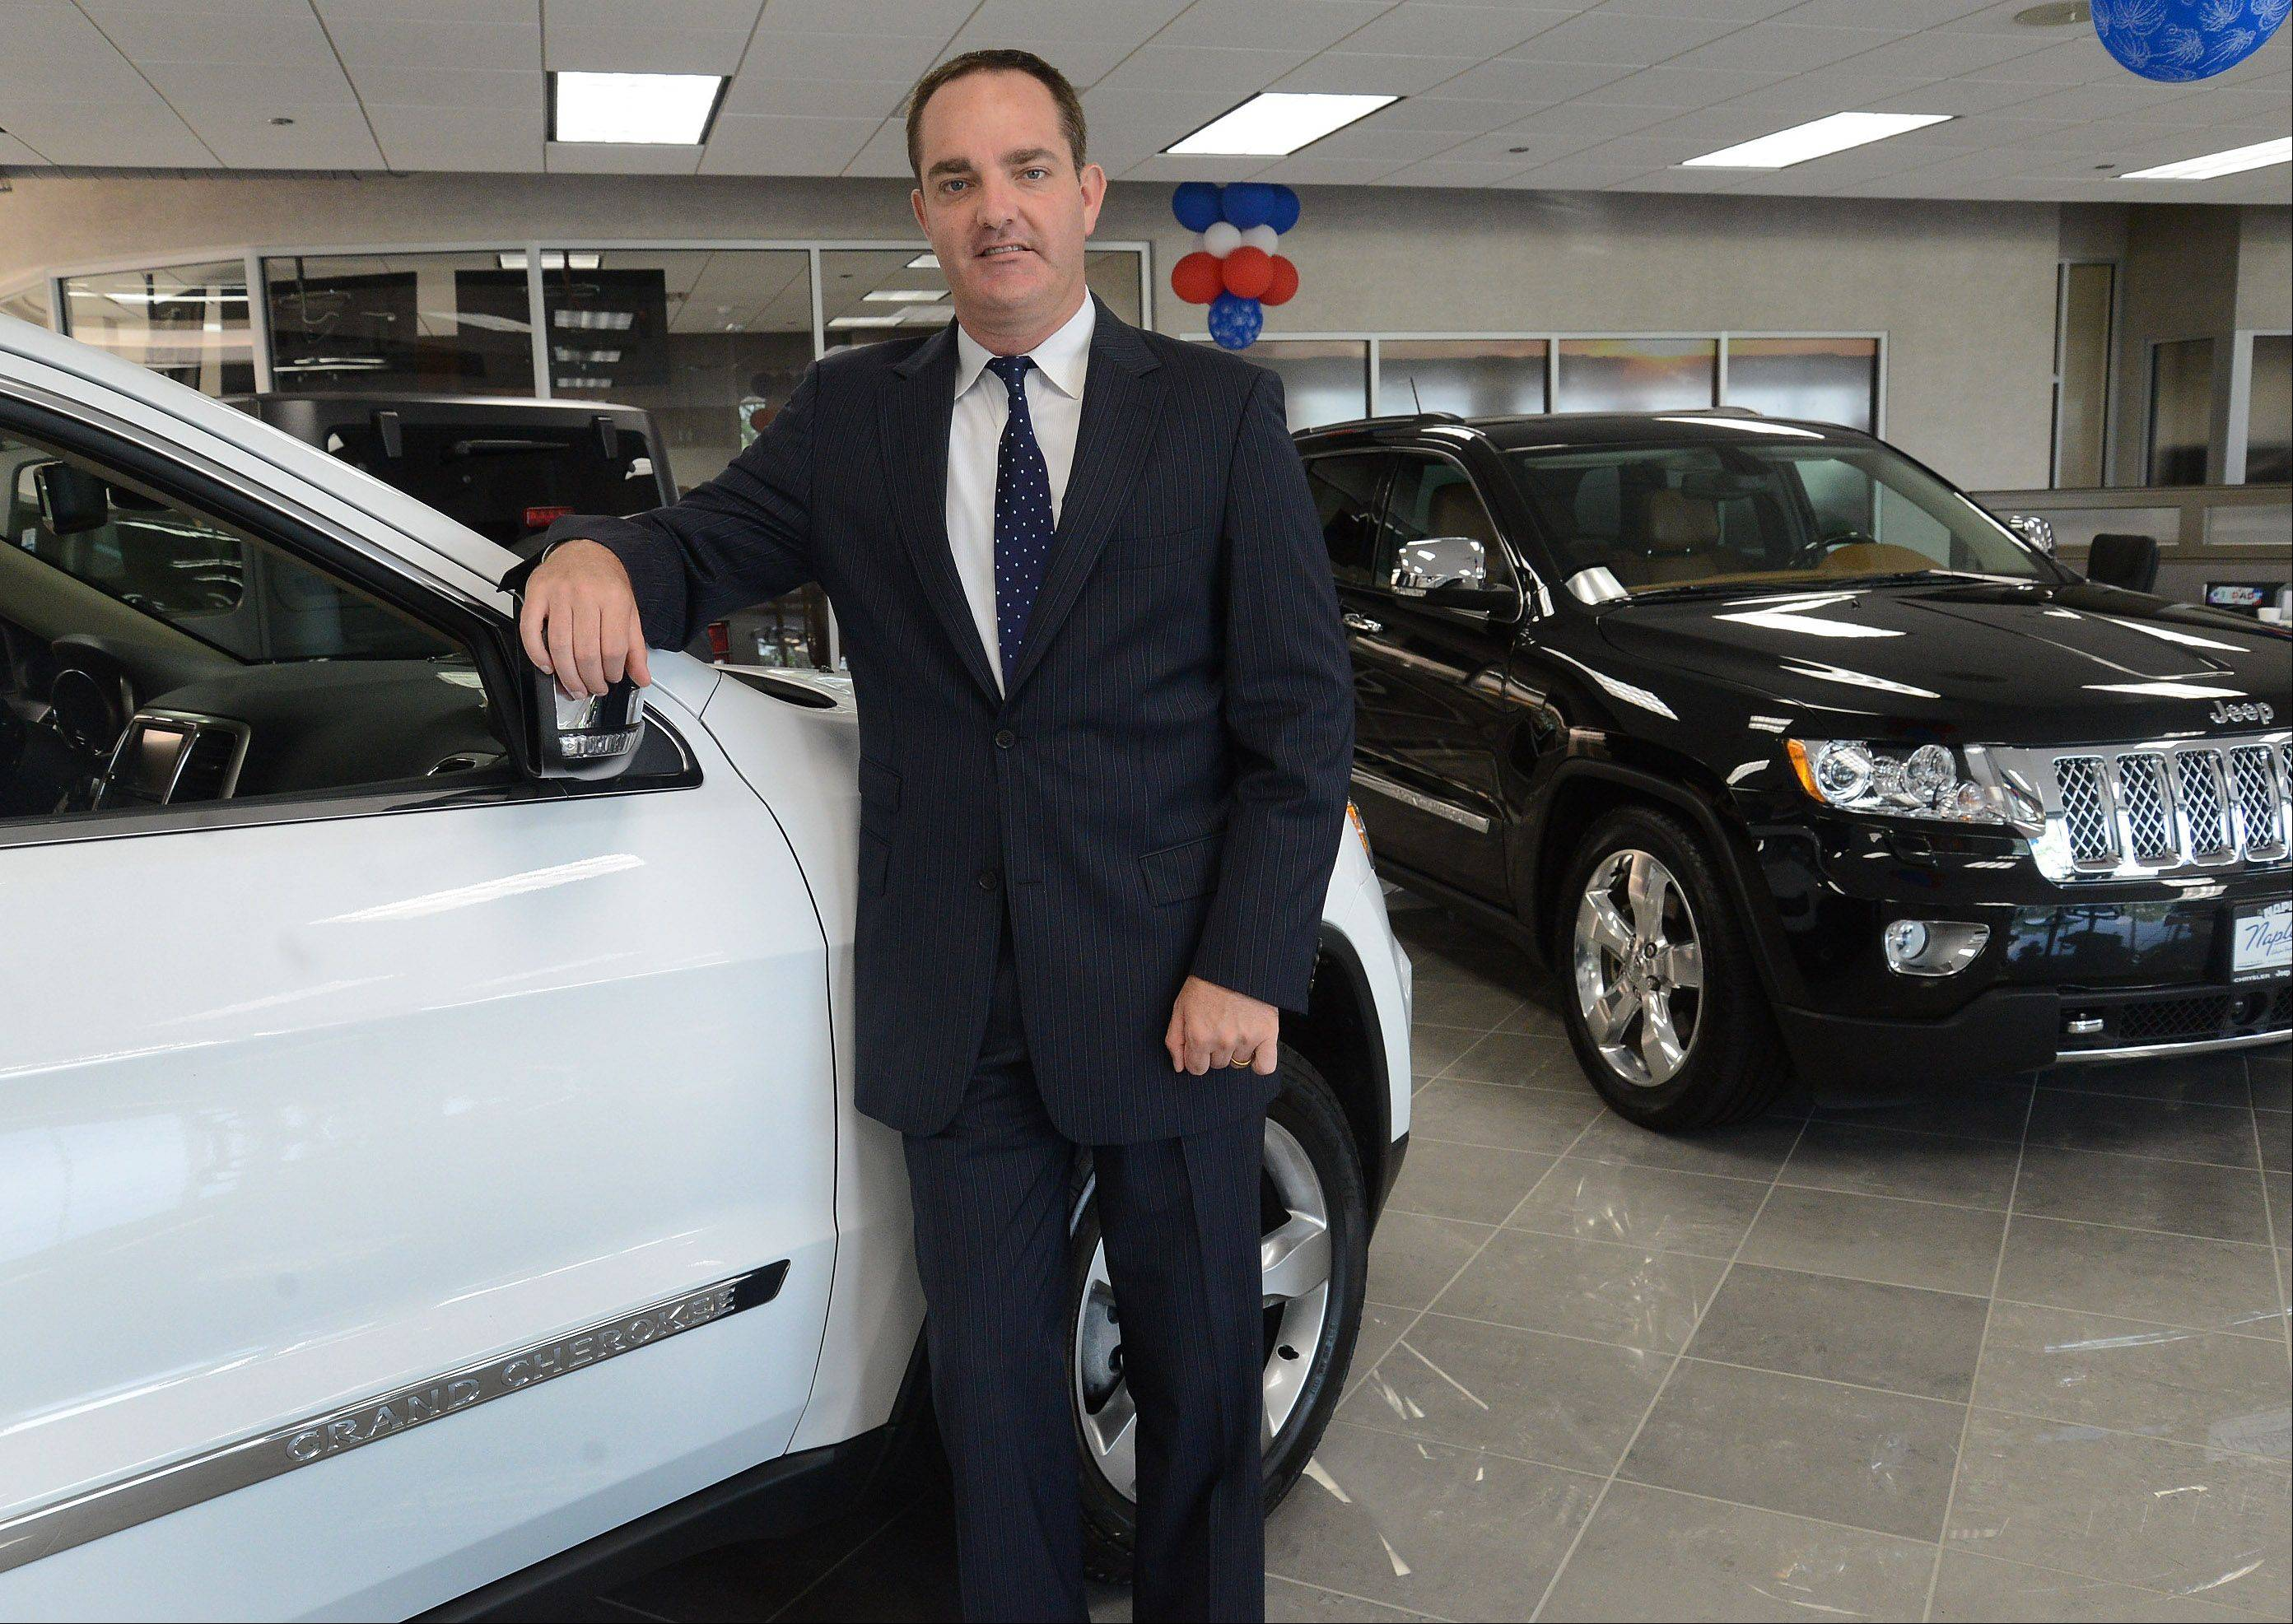 Ed Napleton of Napleton Chrysler Dodge Jeep RAM in Arlington Heights is a fourth-generation member in his family's automotive business.